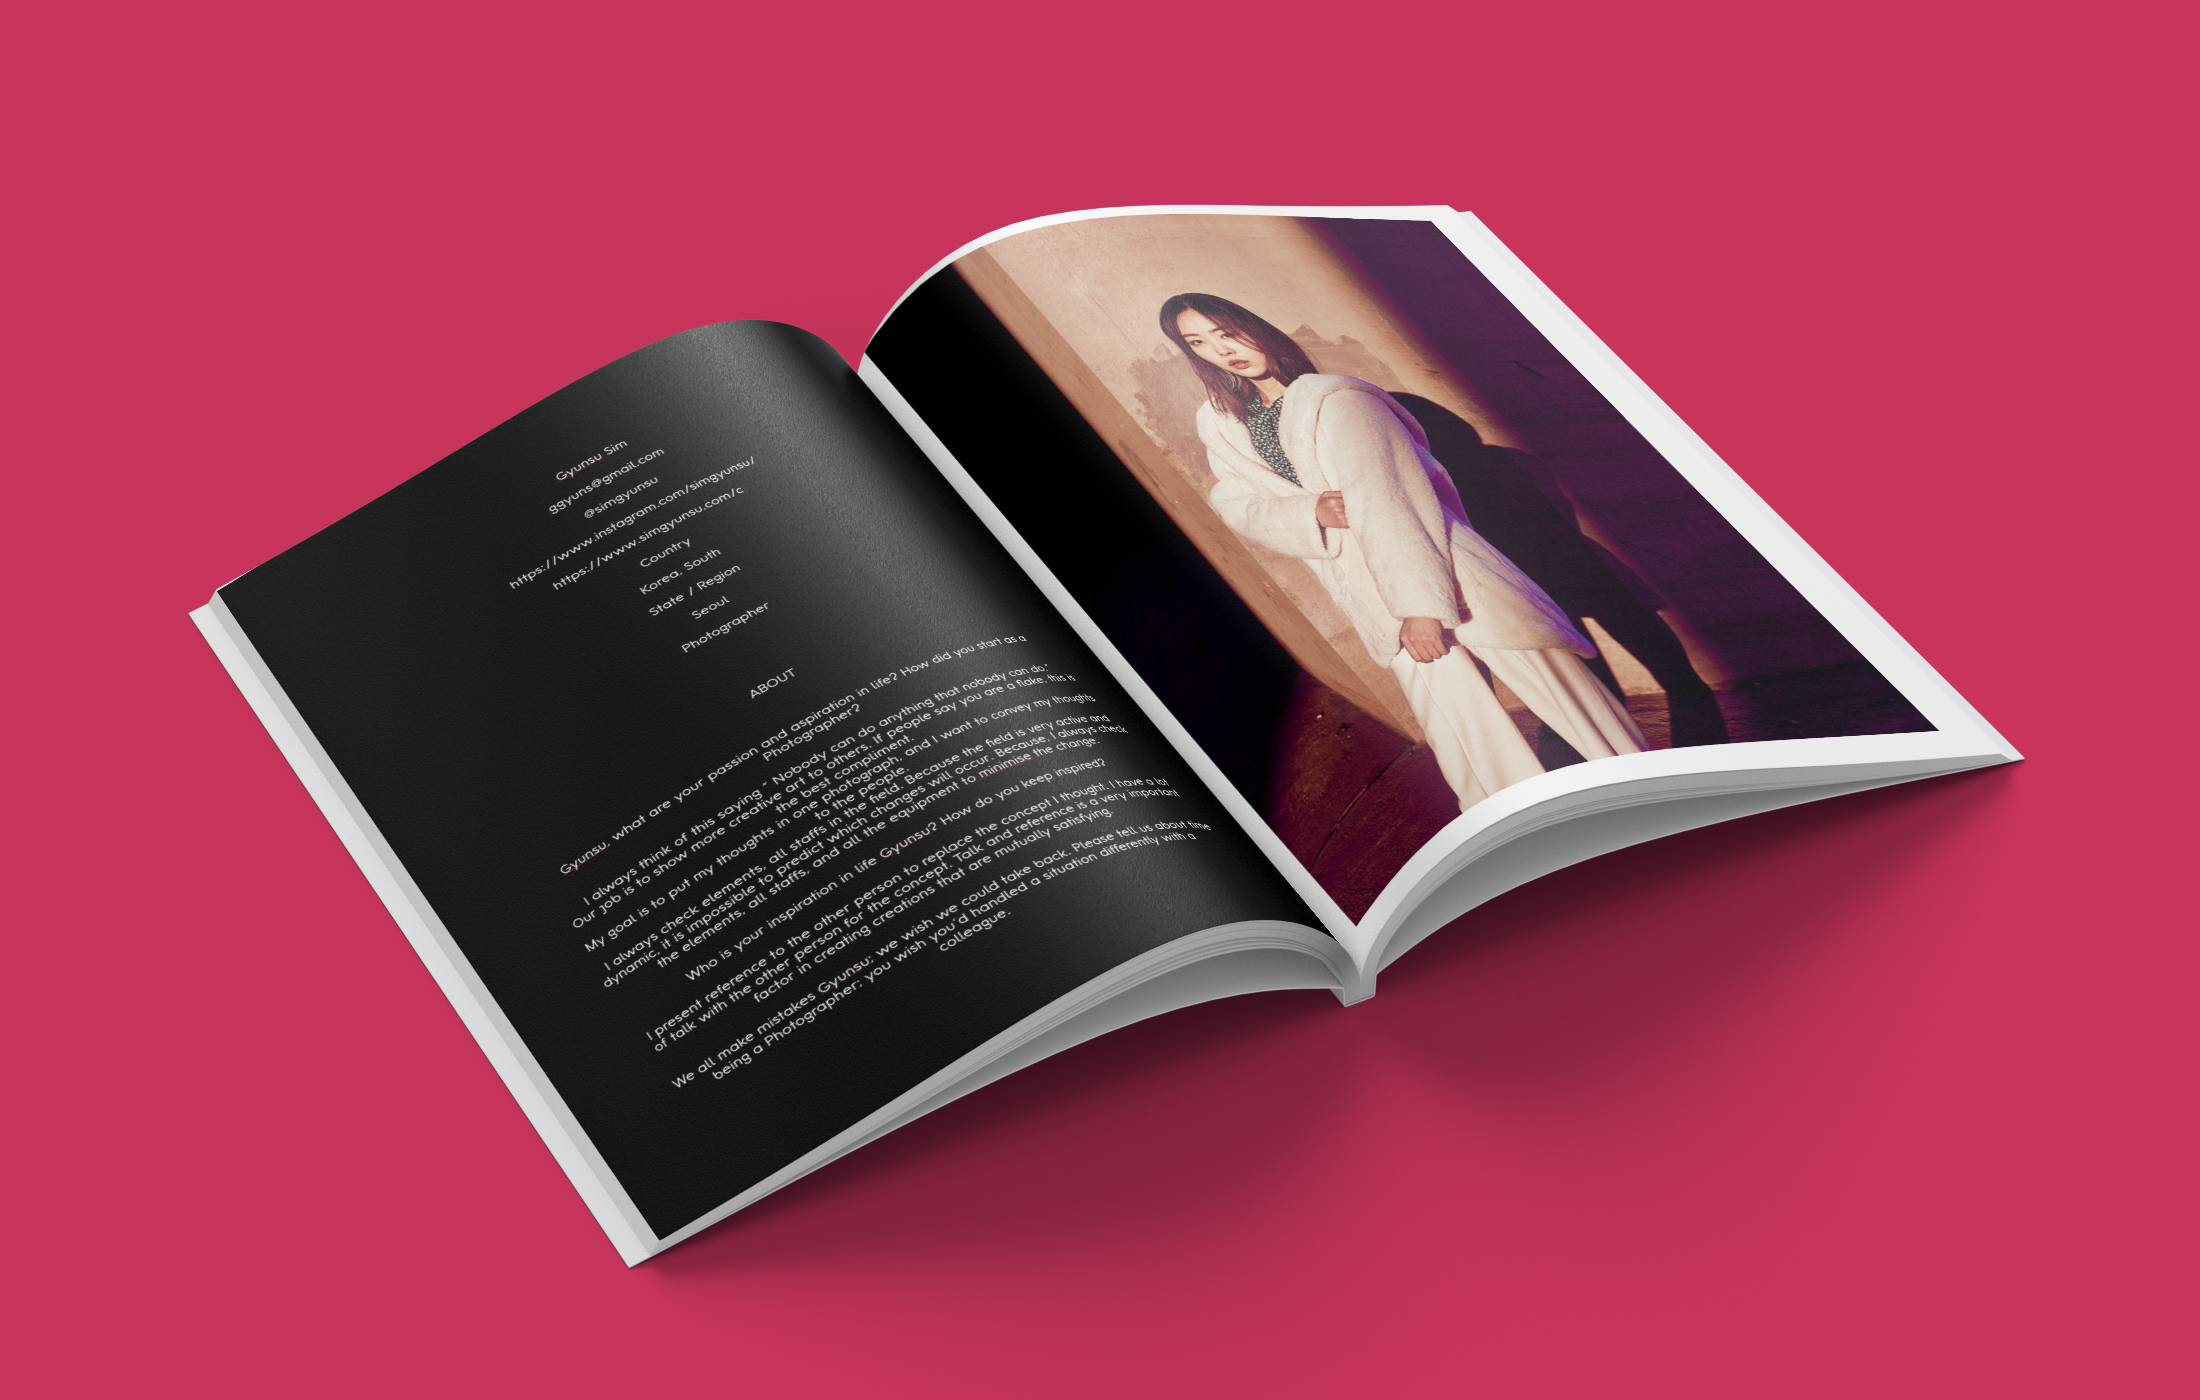 the-best-of-model-citizen-magazine-by-macky-suson-the-most-inclusive-fashion-magazine-59.png